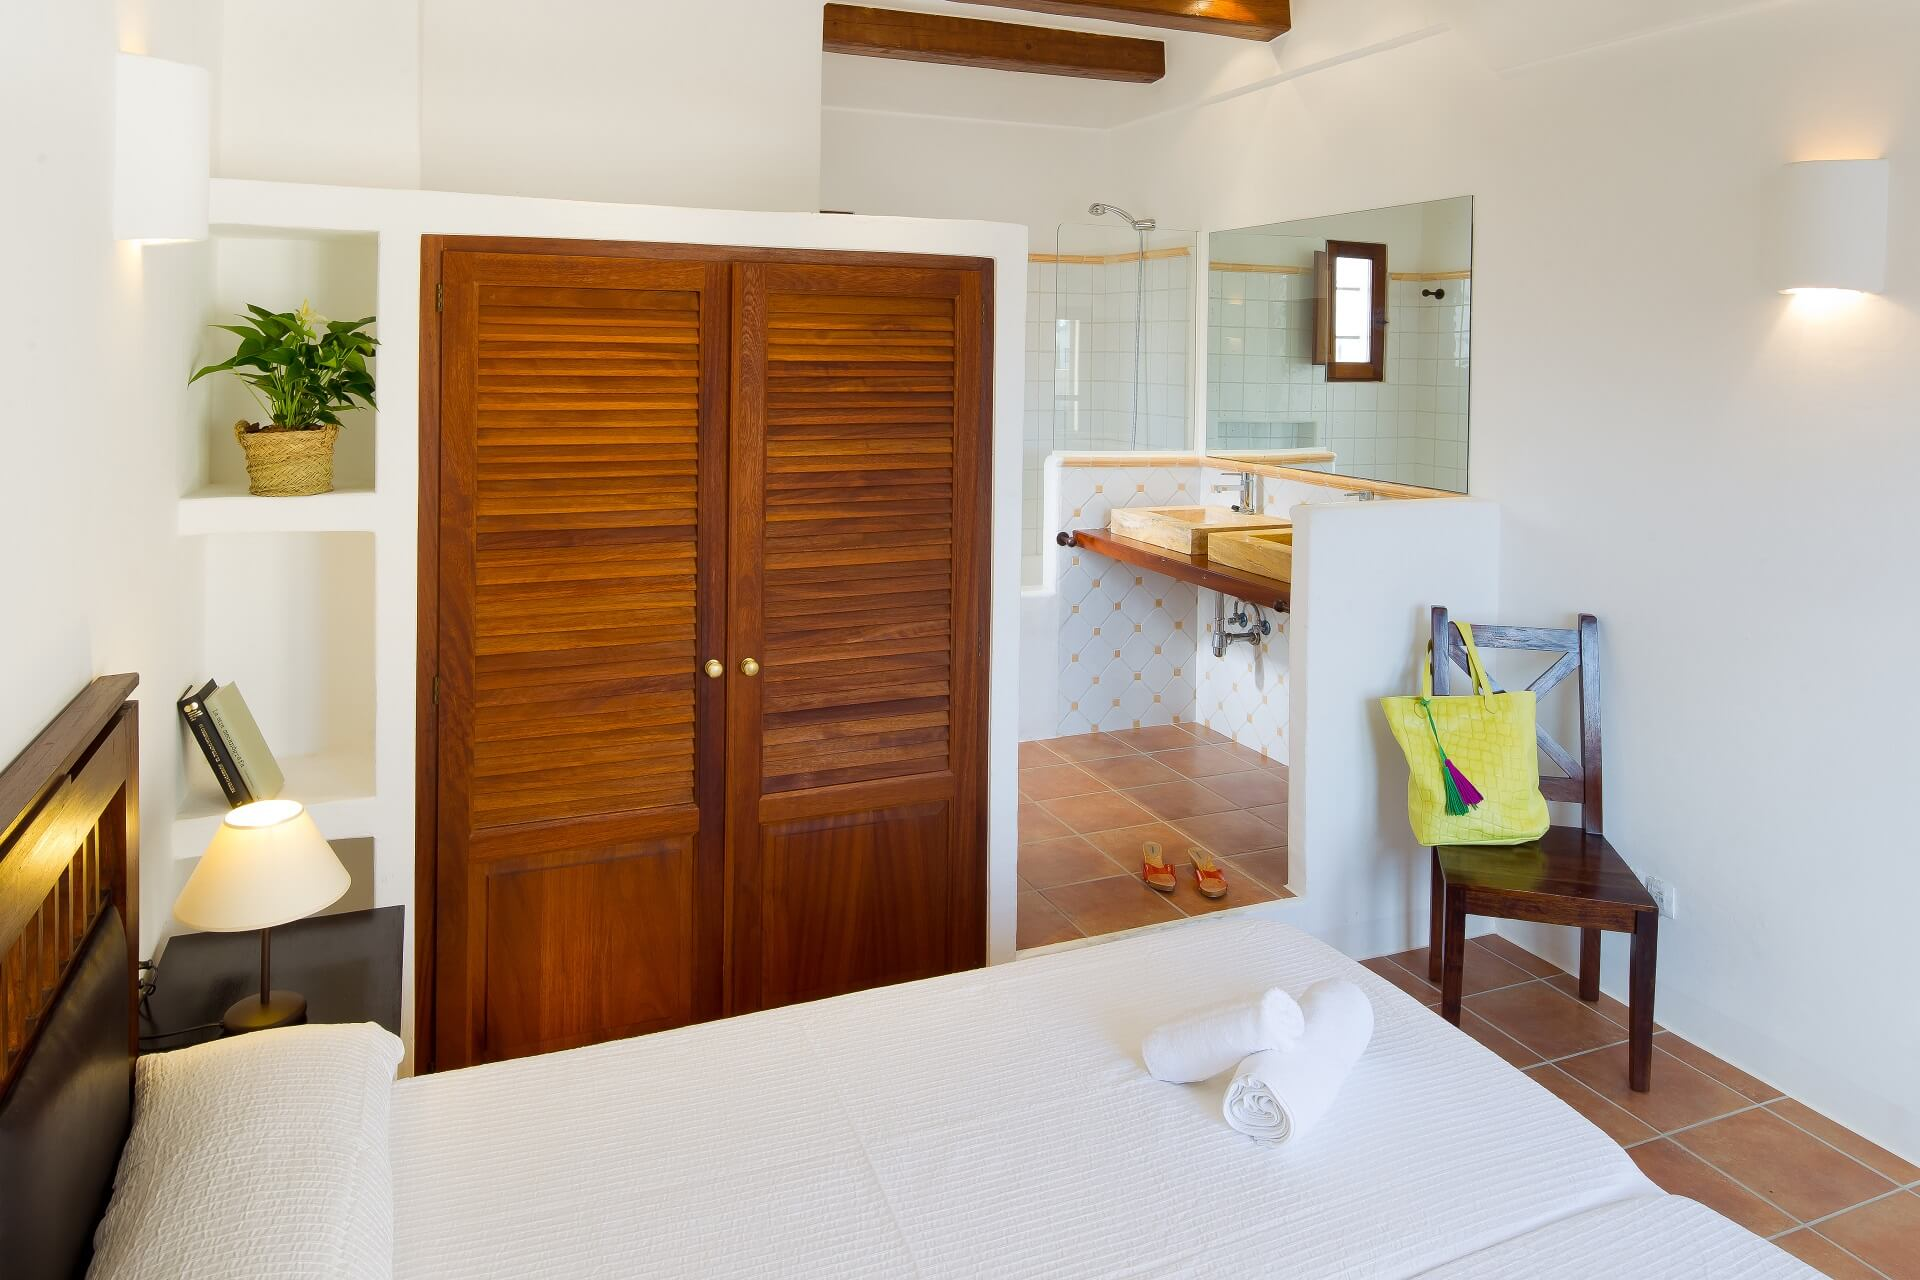 Villa CASES 4 - Bedroom with bath en suite